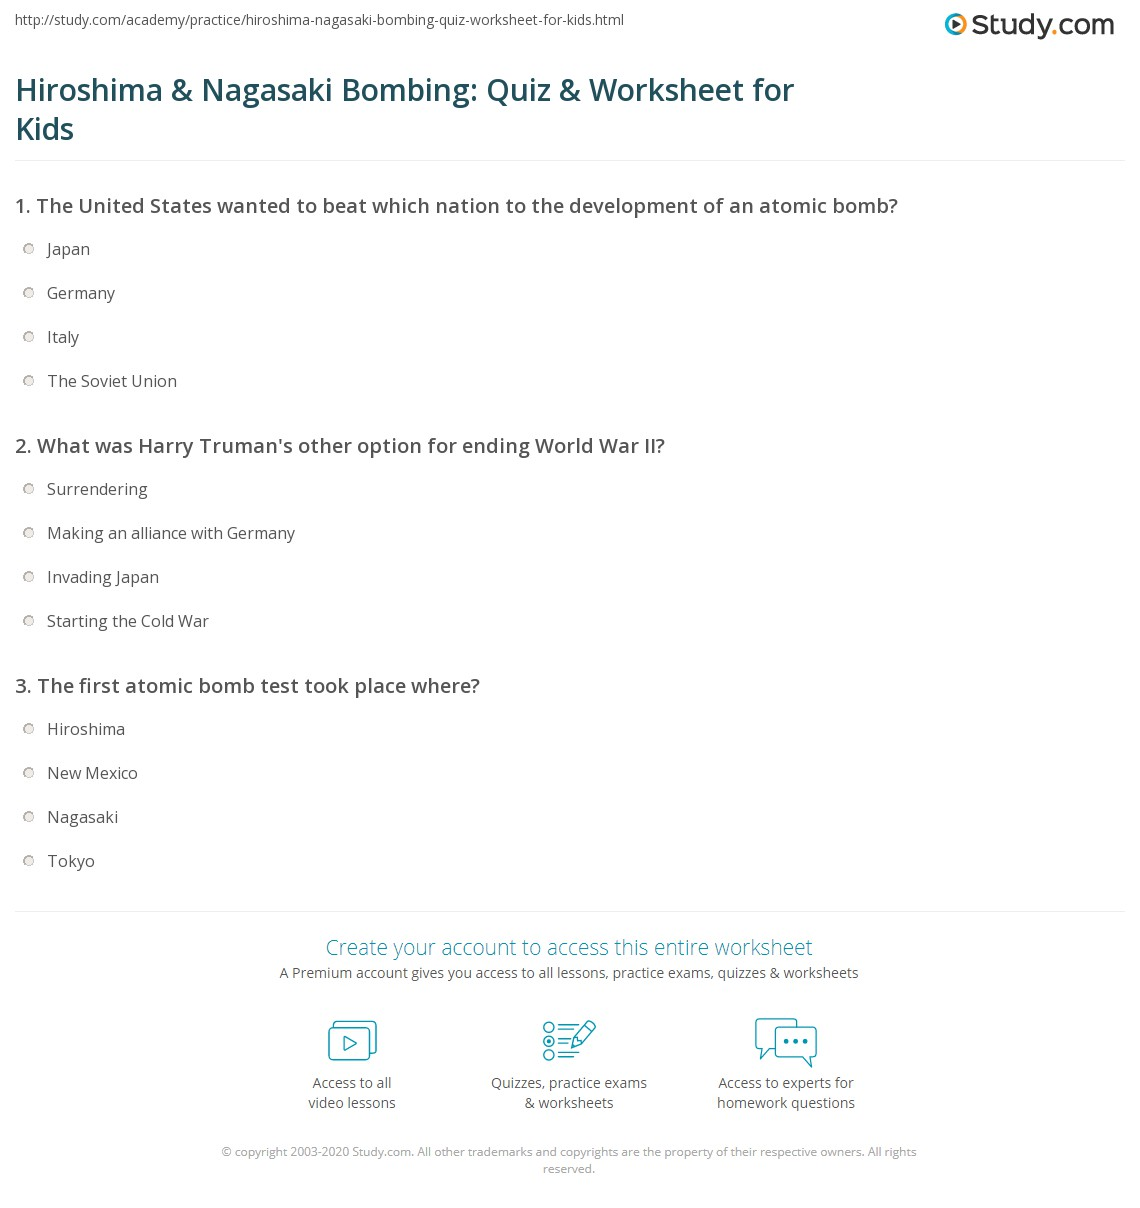 Hiroshima Amp Nagasakiing Quiz Amp Worksheet For Kids